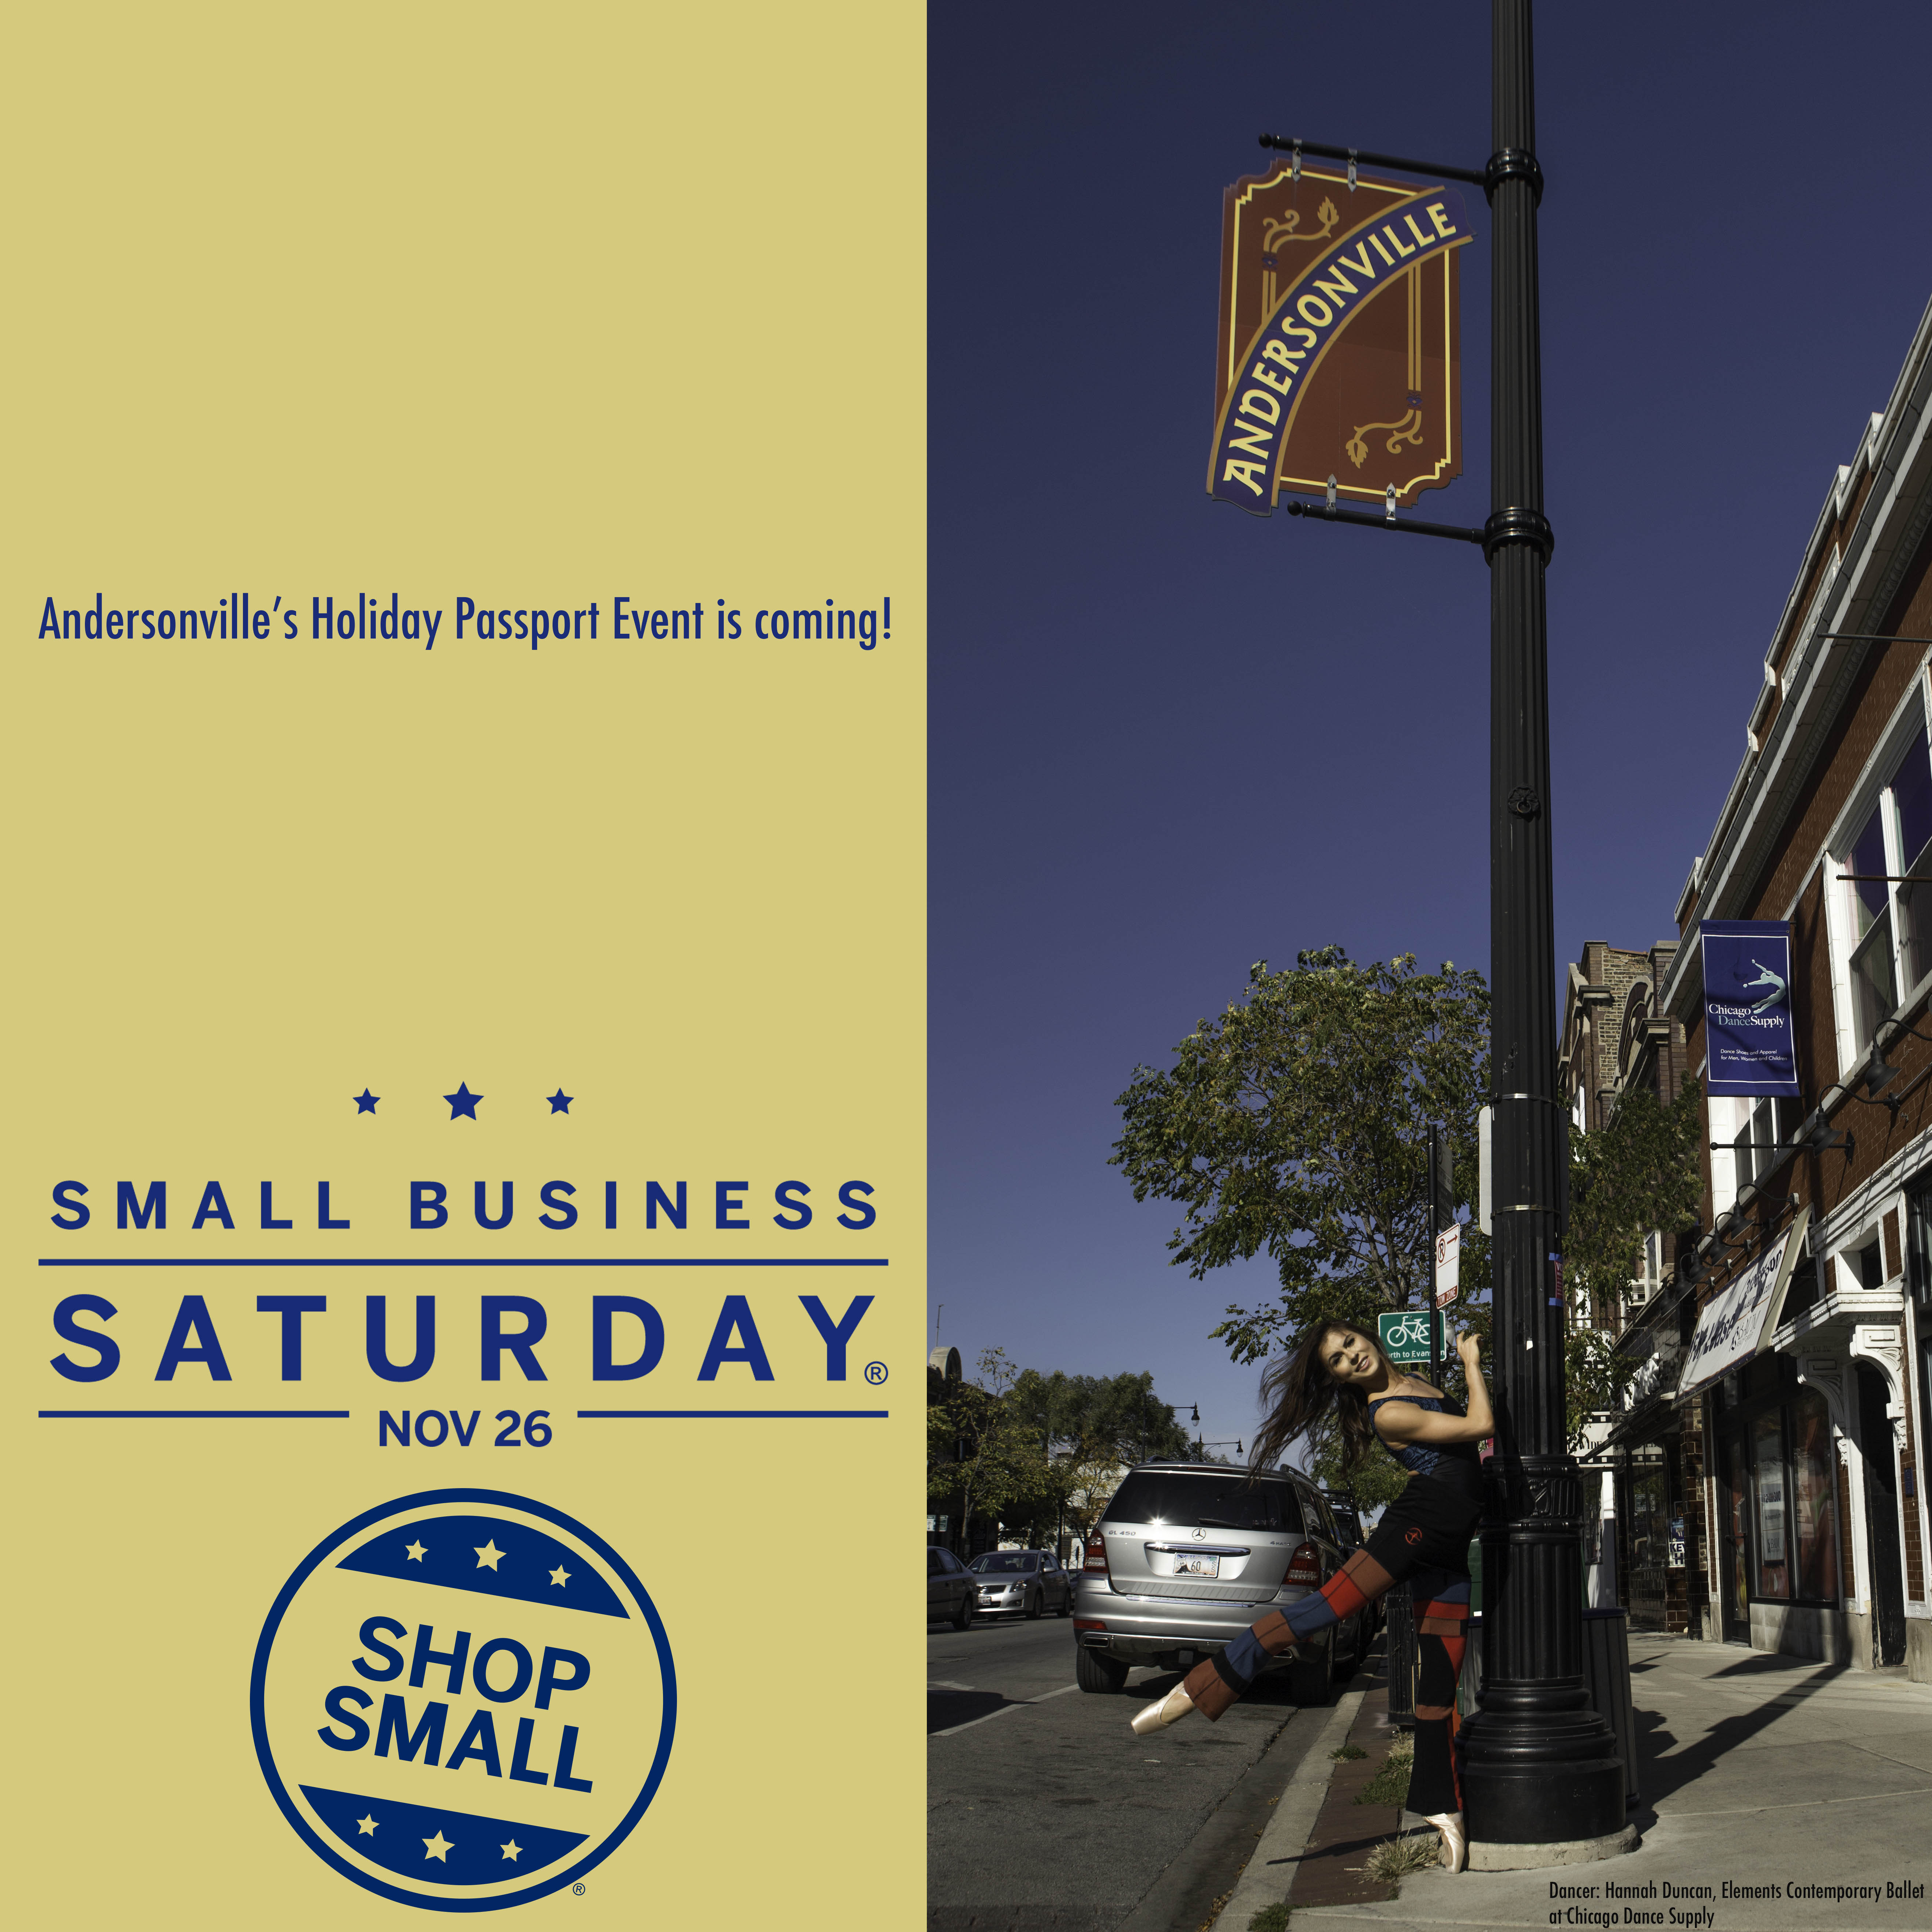 Small Business Saturday in Andersonville